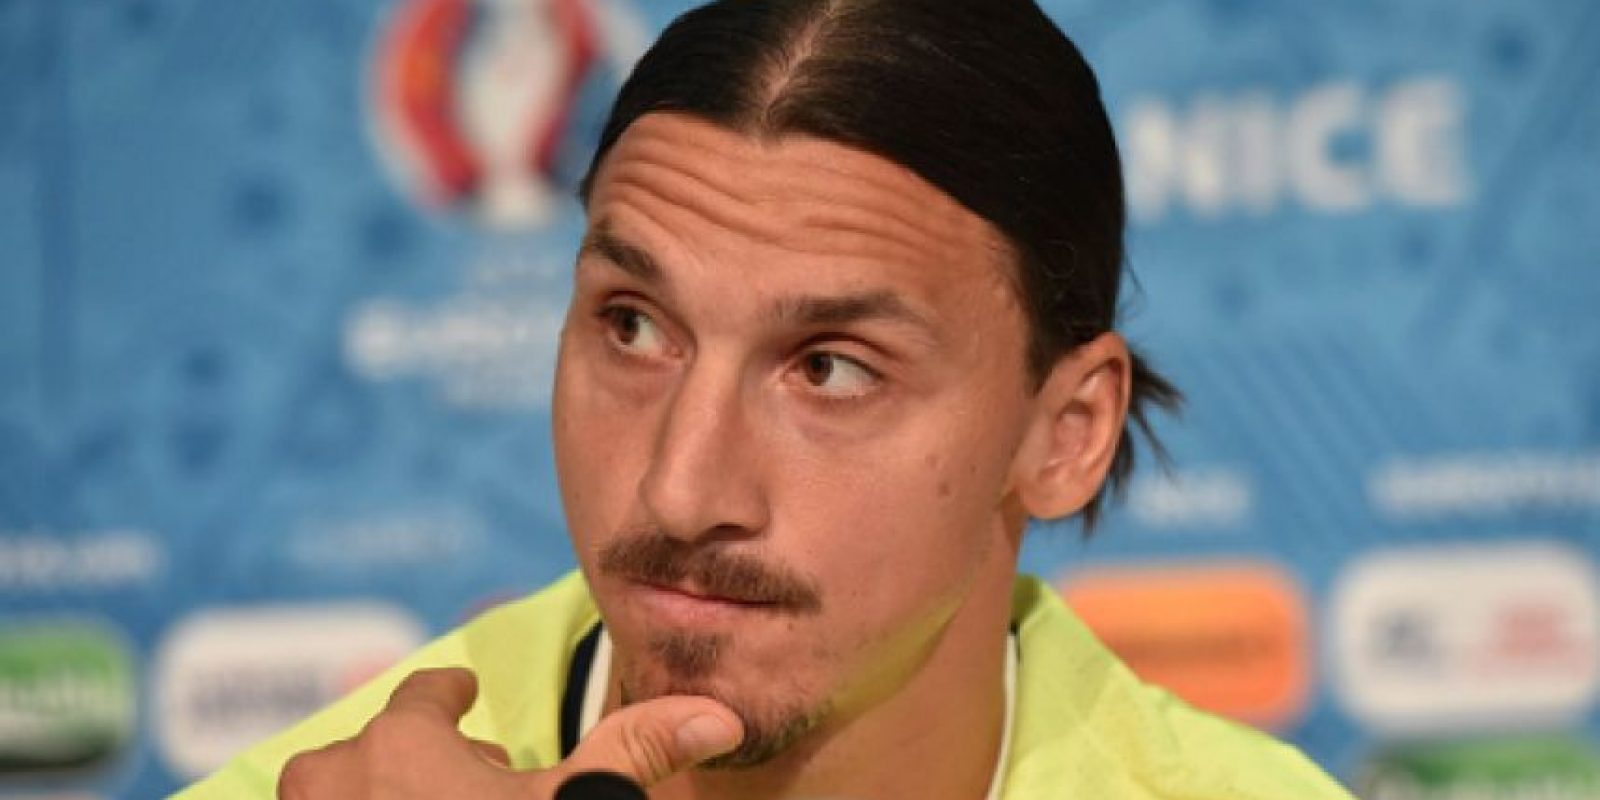 Zlatan Ibrahimovic confirma su llegada al Manchester United Foto: Getty Images